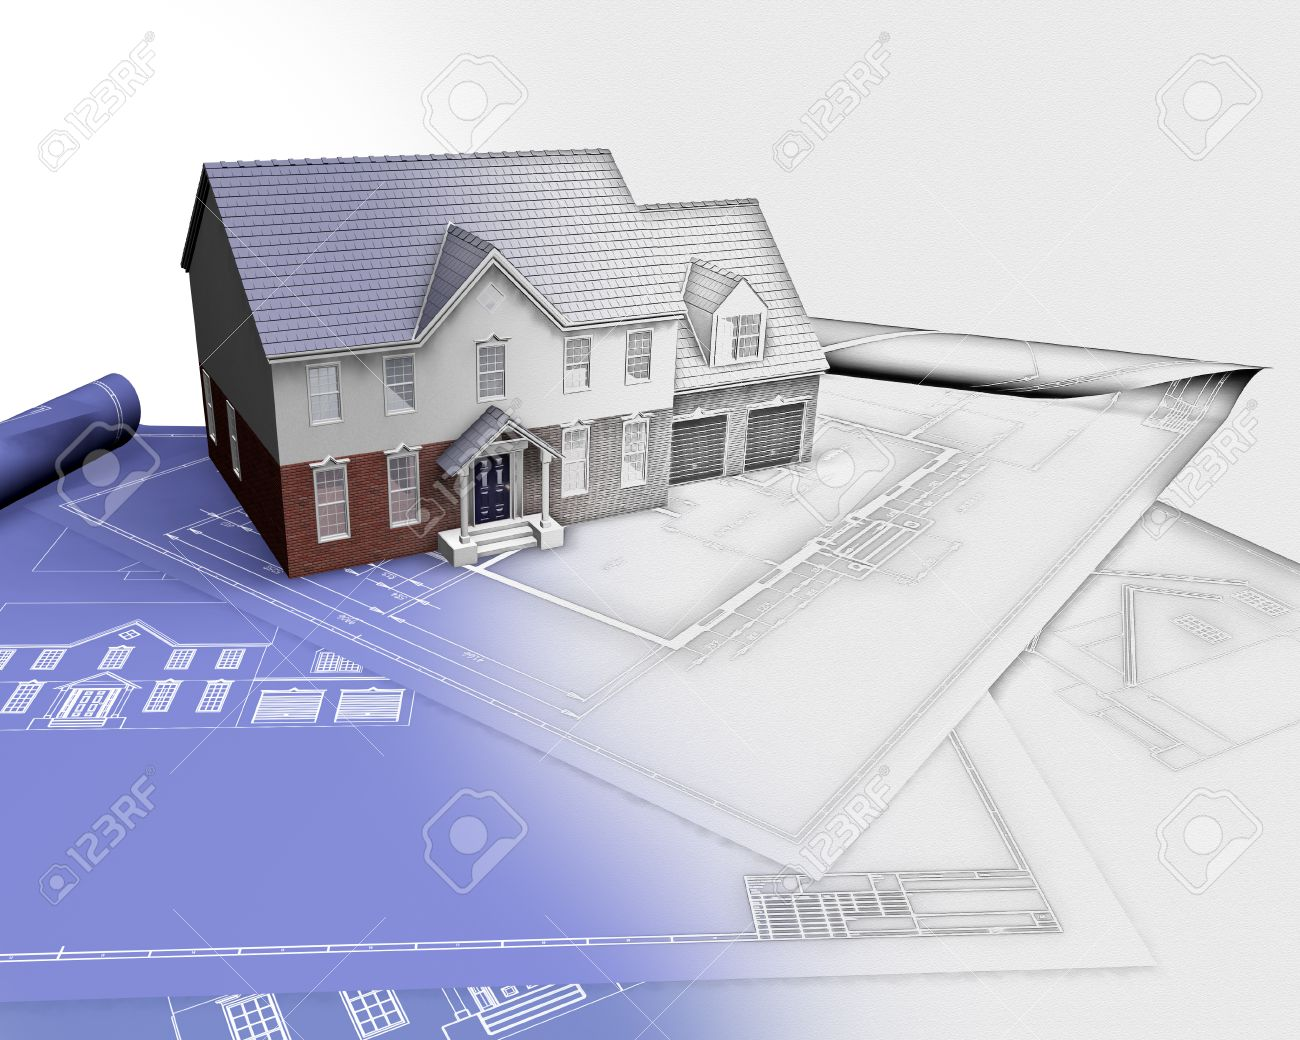 3D Render Of A House On Blueprints With Half In Sketch Phase Stock Photo